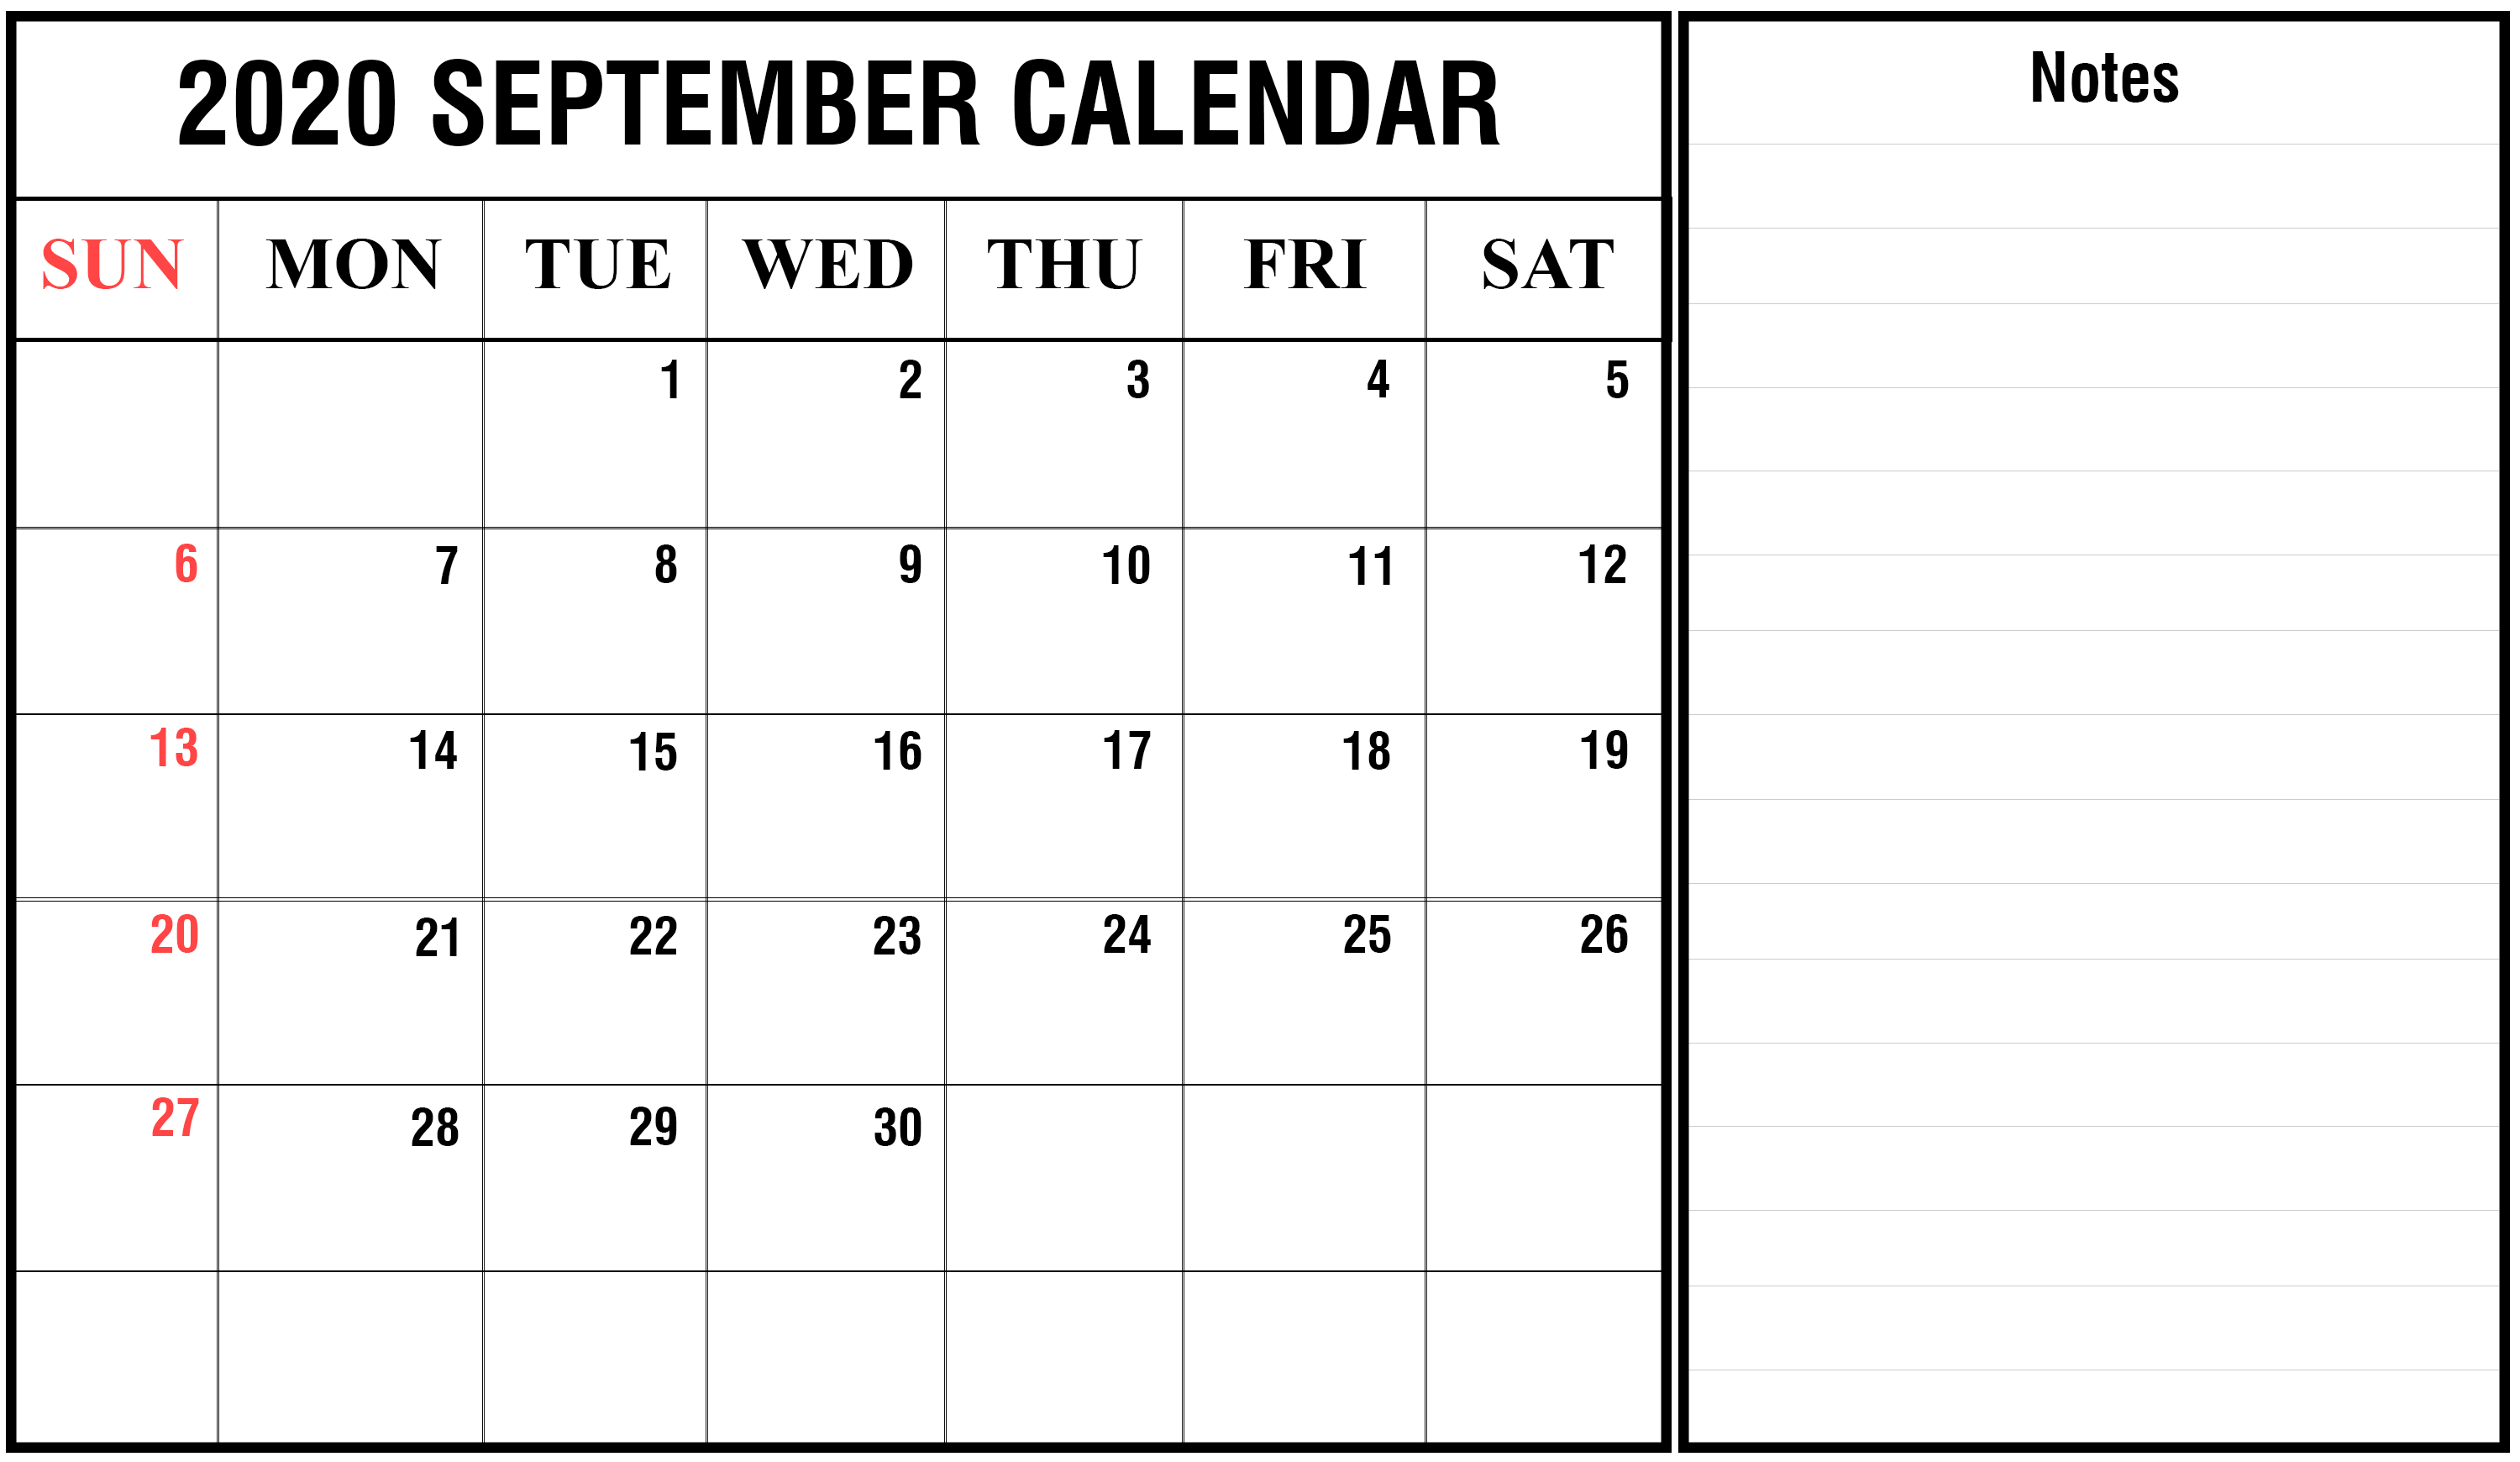 Editable September 2020 Calendar with Notes